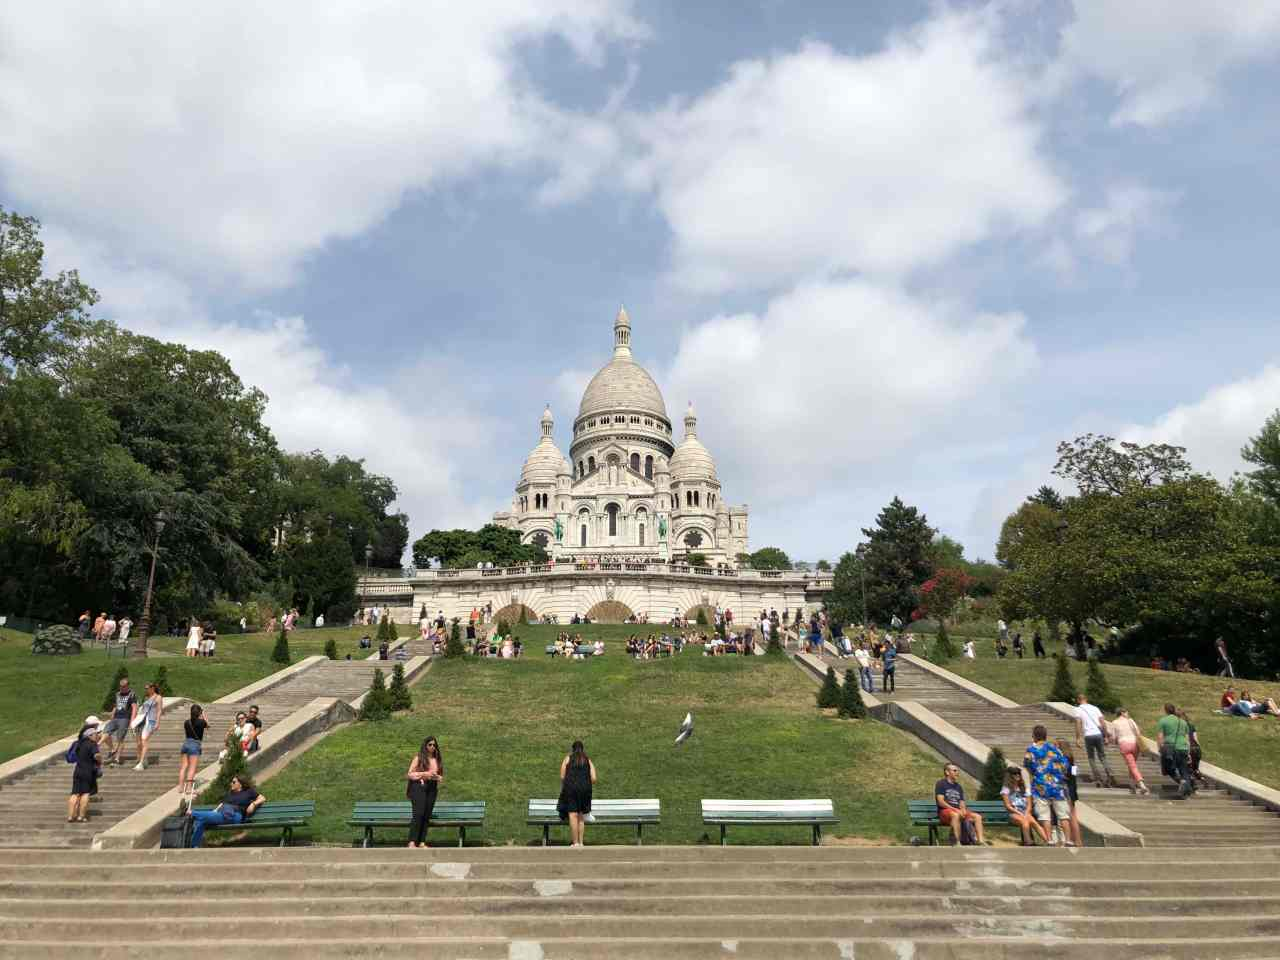 View of the Sacre Coeur from the bottom of the hill